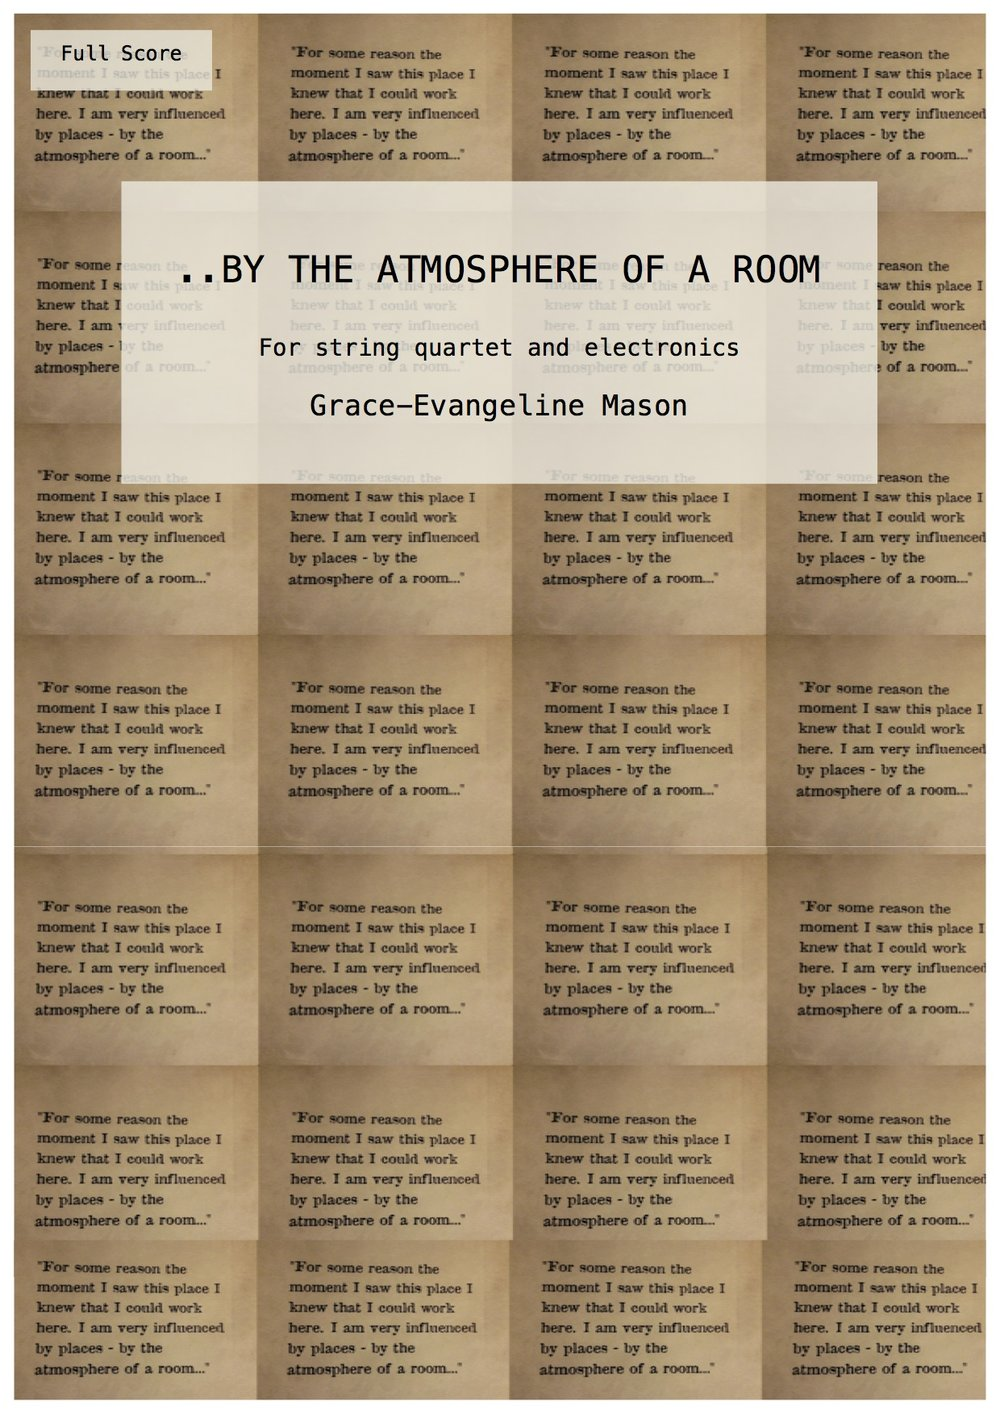 '..BY THE ATMOSPHERE OF A ROOM' (2016) - for string quartet and electronicsDuration: 8'Commissioned by Larry Goves for his 'Decontamination' Concert Series, RNCM, (01/11/16)'For string quartet and electronics, '..By The Atmosphere Of A Room' seeks to create a dense, ambient environment to reflect infinity. Inspired by the interests and piano works of Pierre Boulez, who has been referred to as 'An Eternal Musical Icon' and an 'Eternal Enigma,' the piece is an immersive, and seemingly eternal, harmonic soundworld. Fragments influenced by the technique of integral serialism break through the texture and rise to the forefront to emulate Boulez's compositional strategies. This occurs in the centre of the piece, framed by atmospheric textures, and is represented in both the string quartet and the electronics.The title is taken from a quote by the artist Francis Bacon, who influenced the works of Boulez, written on the wall of the Francis Bacon Studio Exhibition, Dublin City Gallery.'©G.E.M.2016©Cover Image: 'By The Atmosphere Of A Room' by Grace-Evangeline Mason 2016